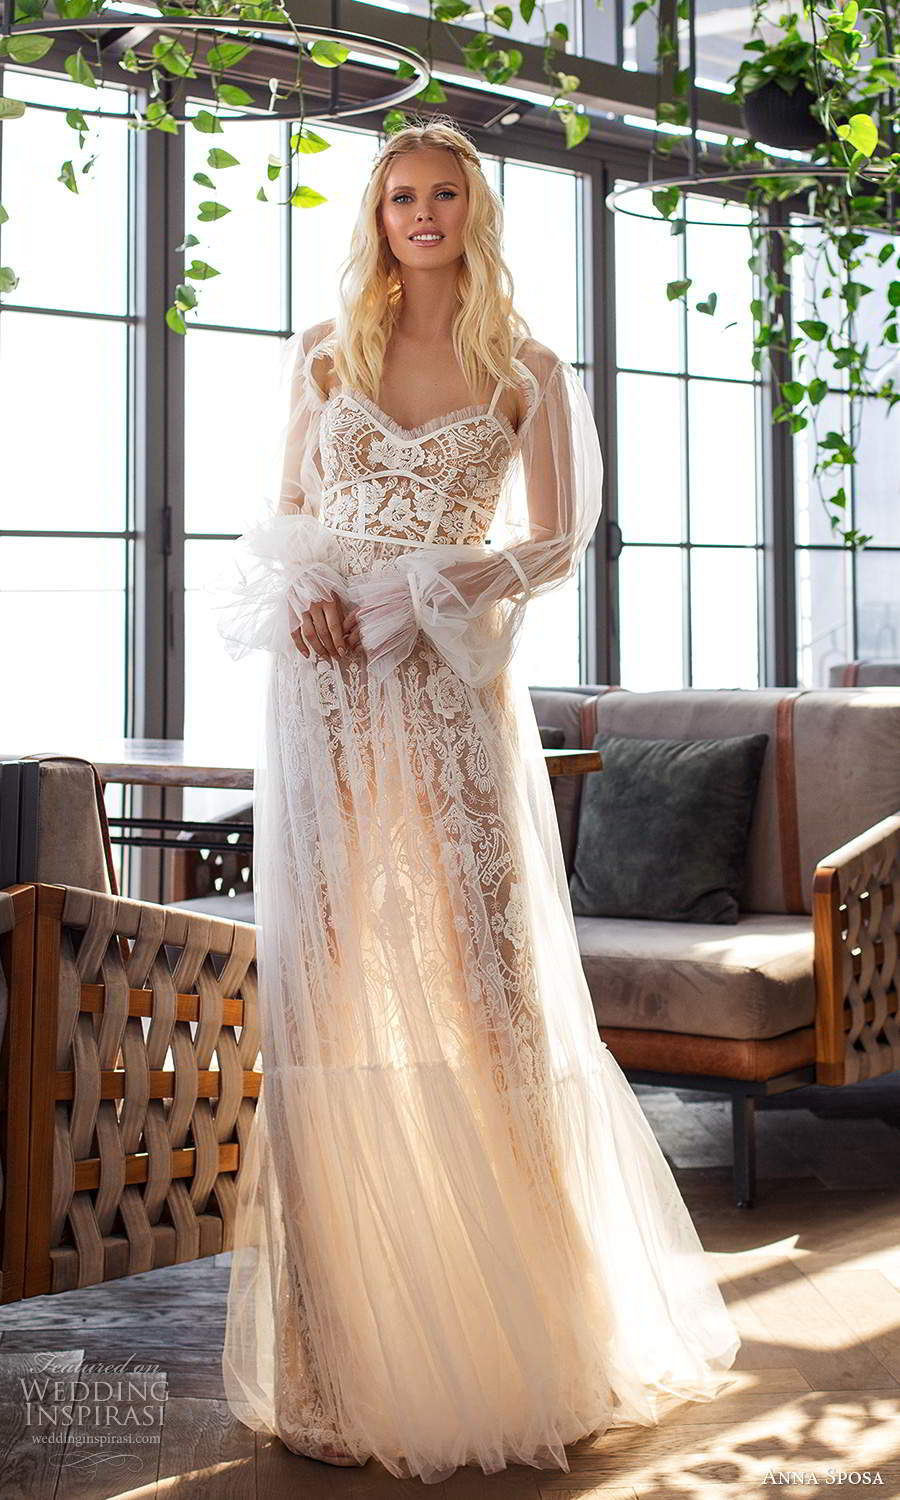 anna sposa 2021 boho bridal sleeveless straps semi sweetheart neckline fully embellished lace boho a line wedding dress sheer bishop sleeve top (9) mv